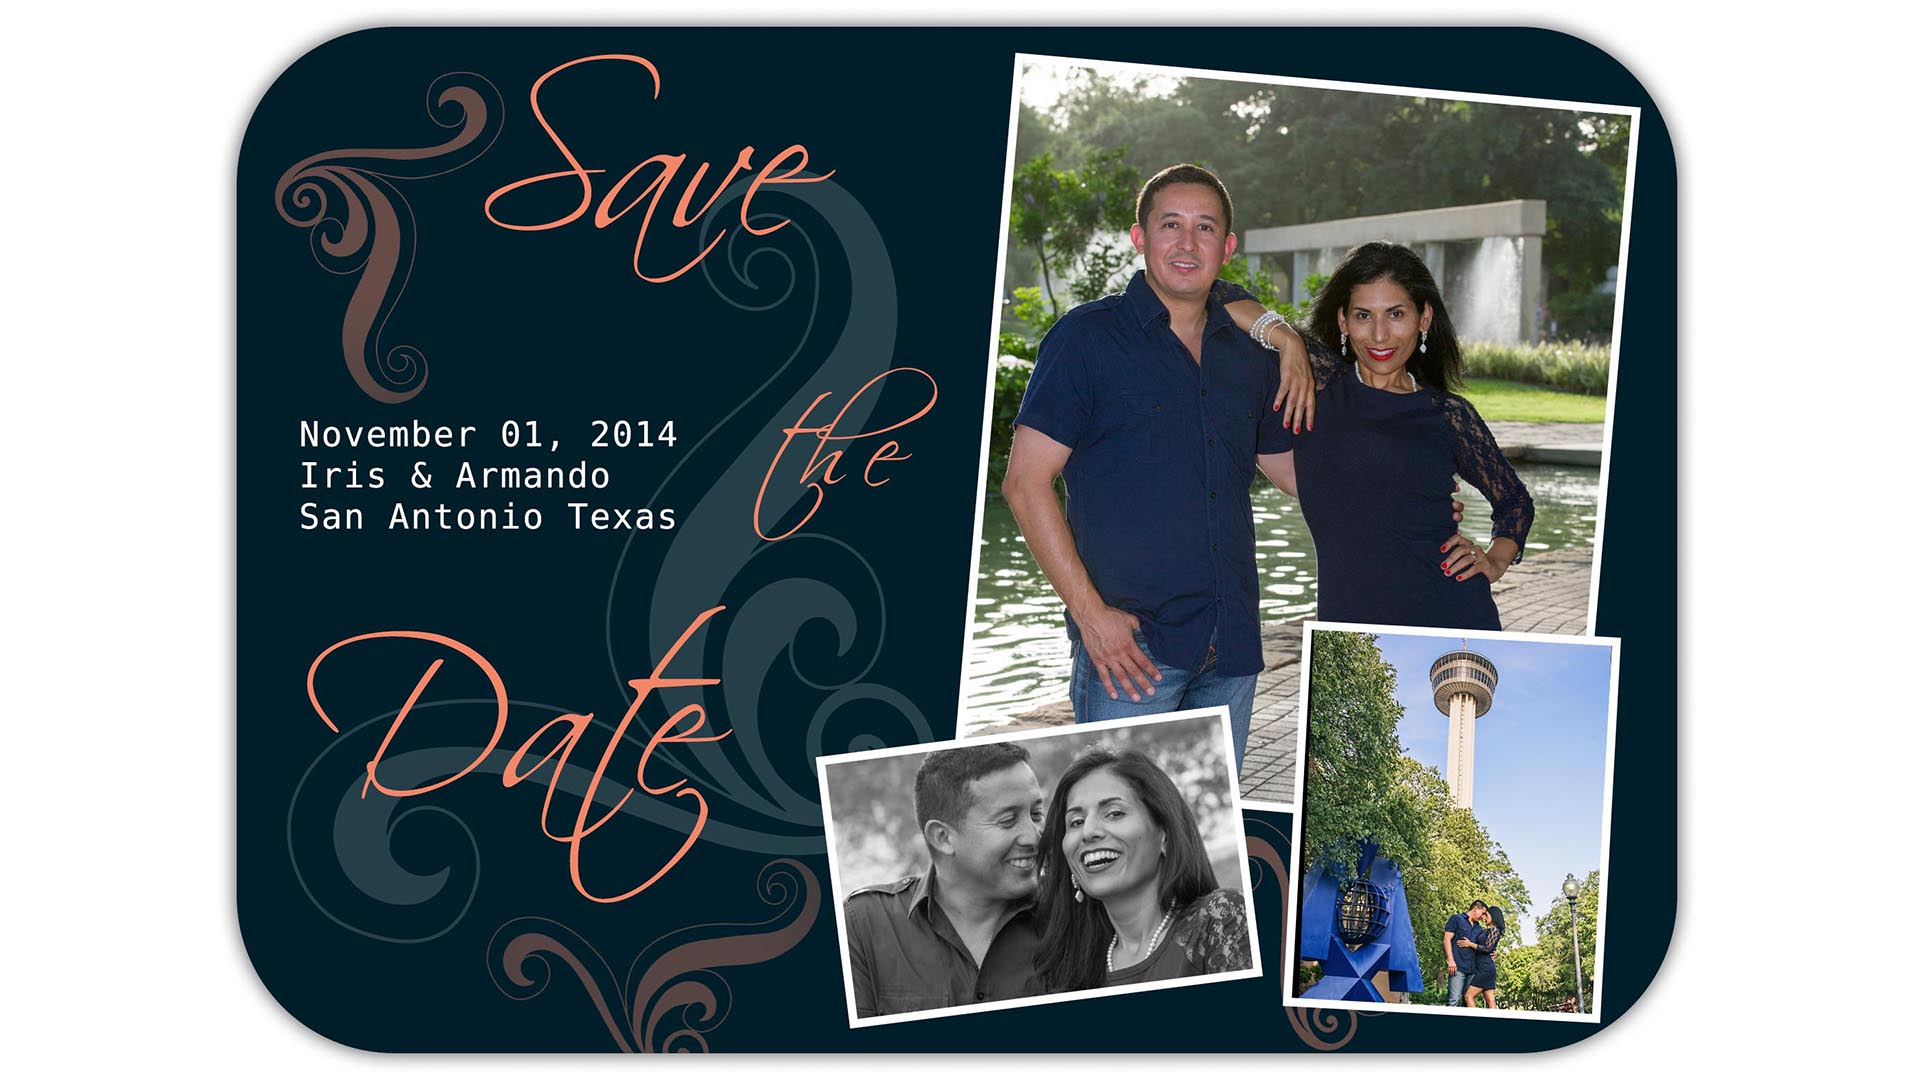 Save the Date card from Hemisfair Park